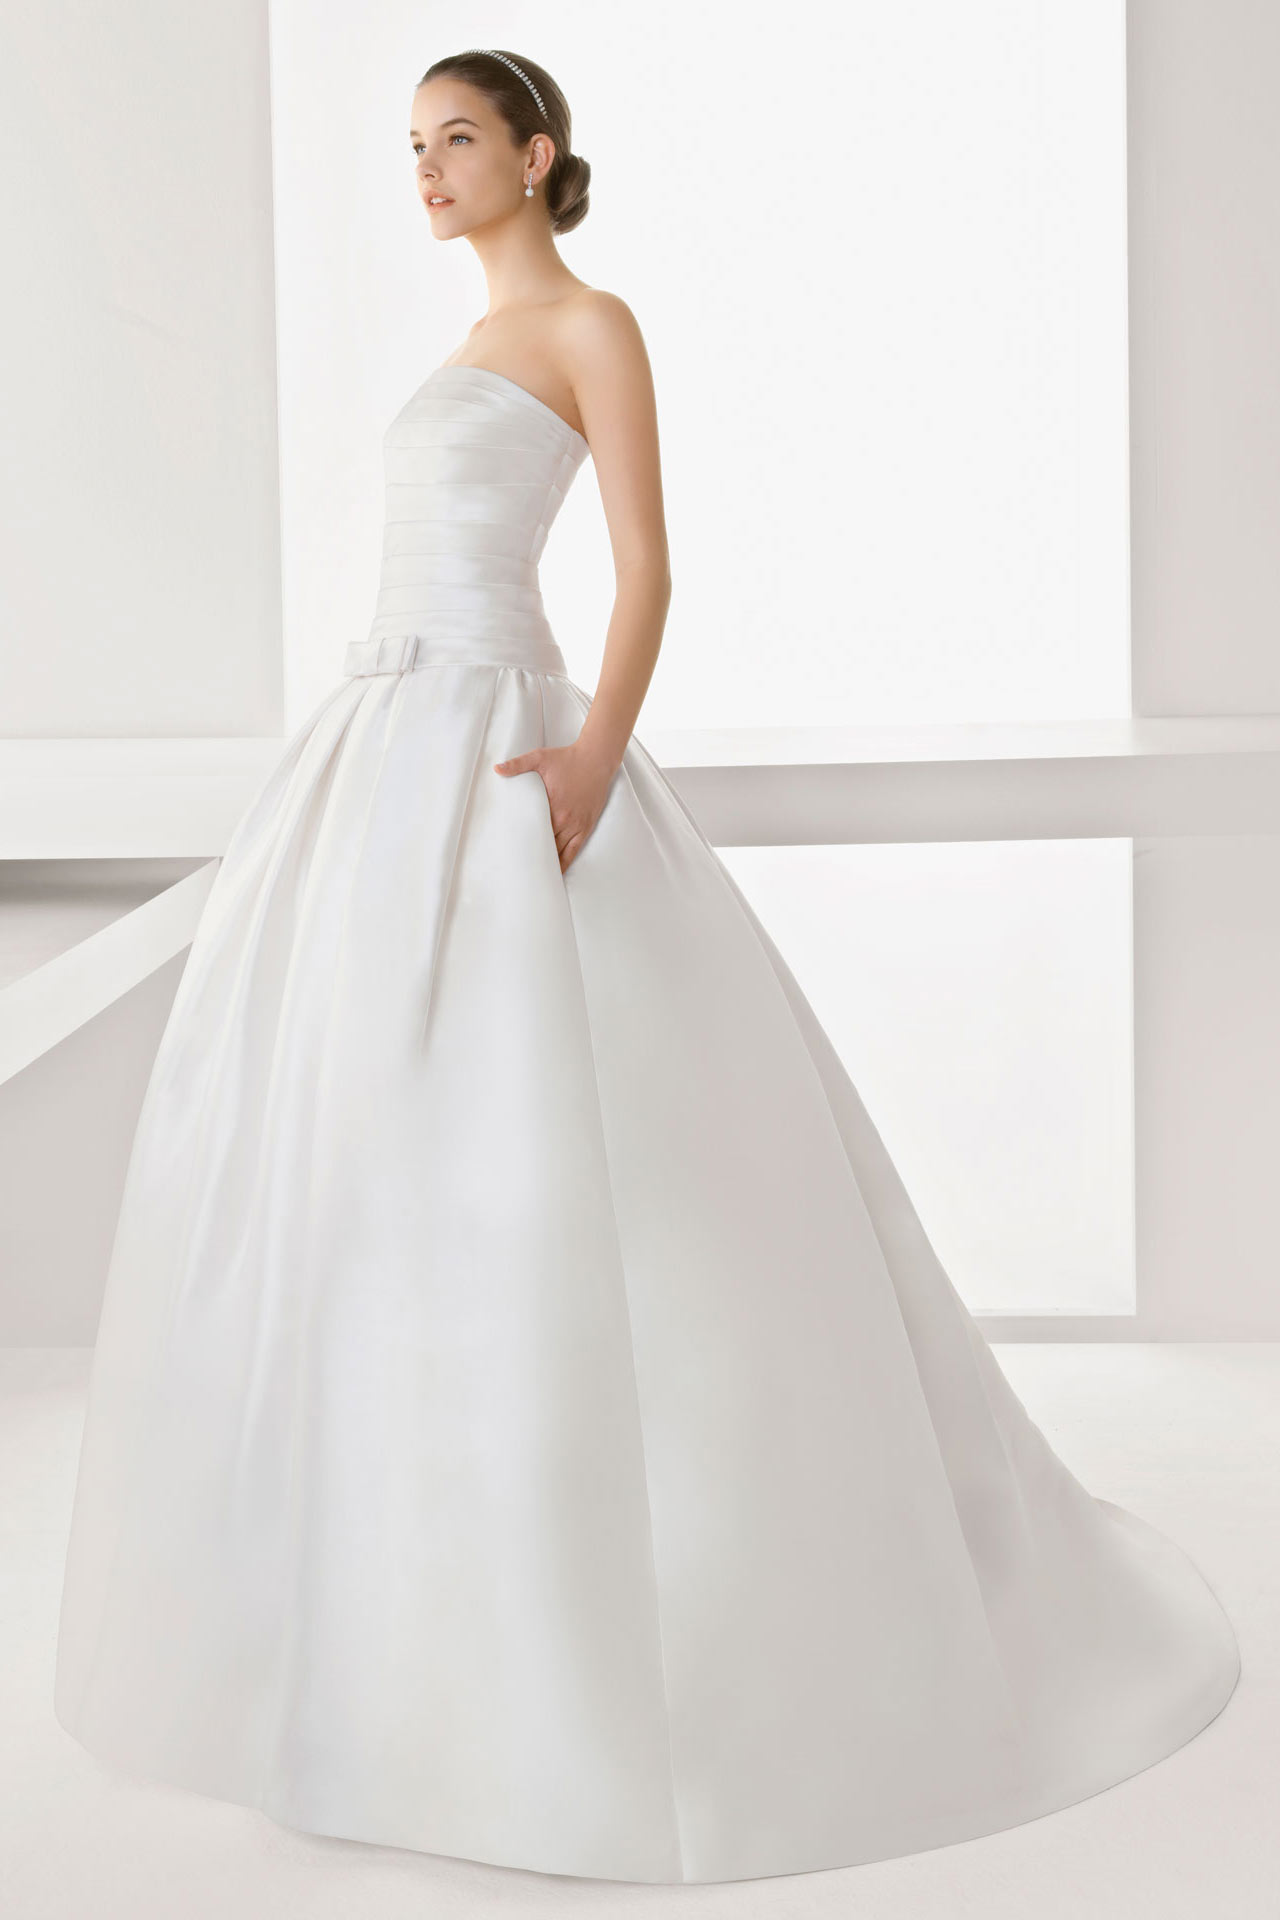 Vintage Ball Gown Satin Bowknot Wedding Dress with Lace